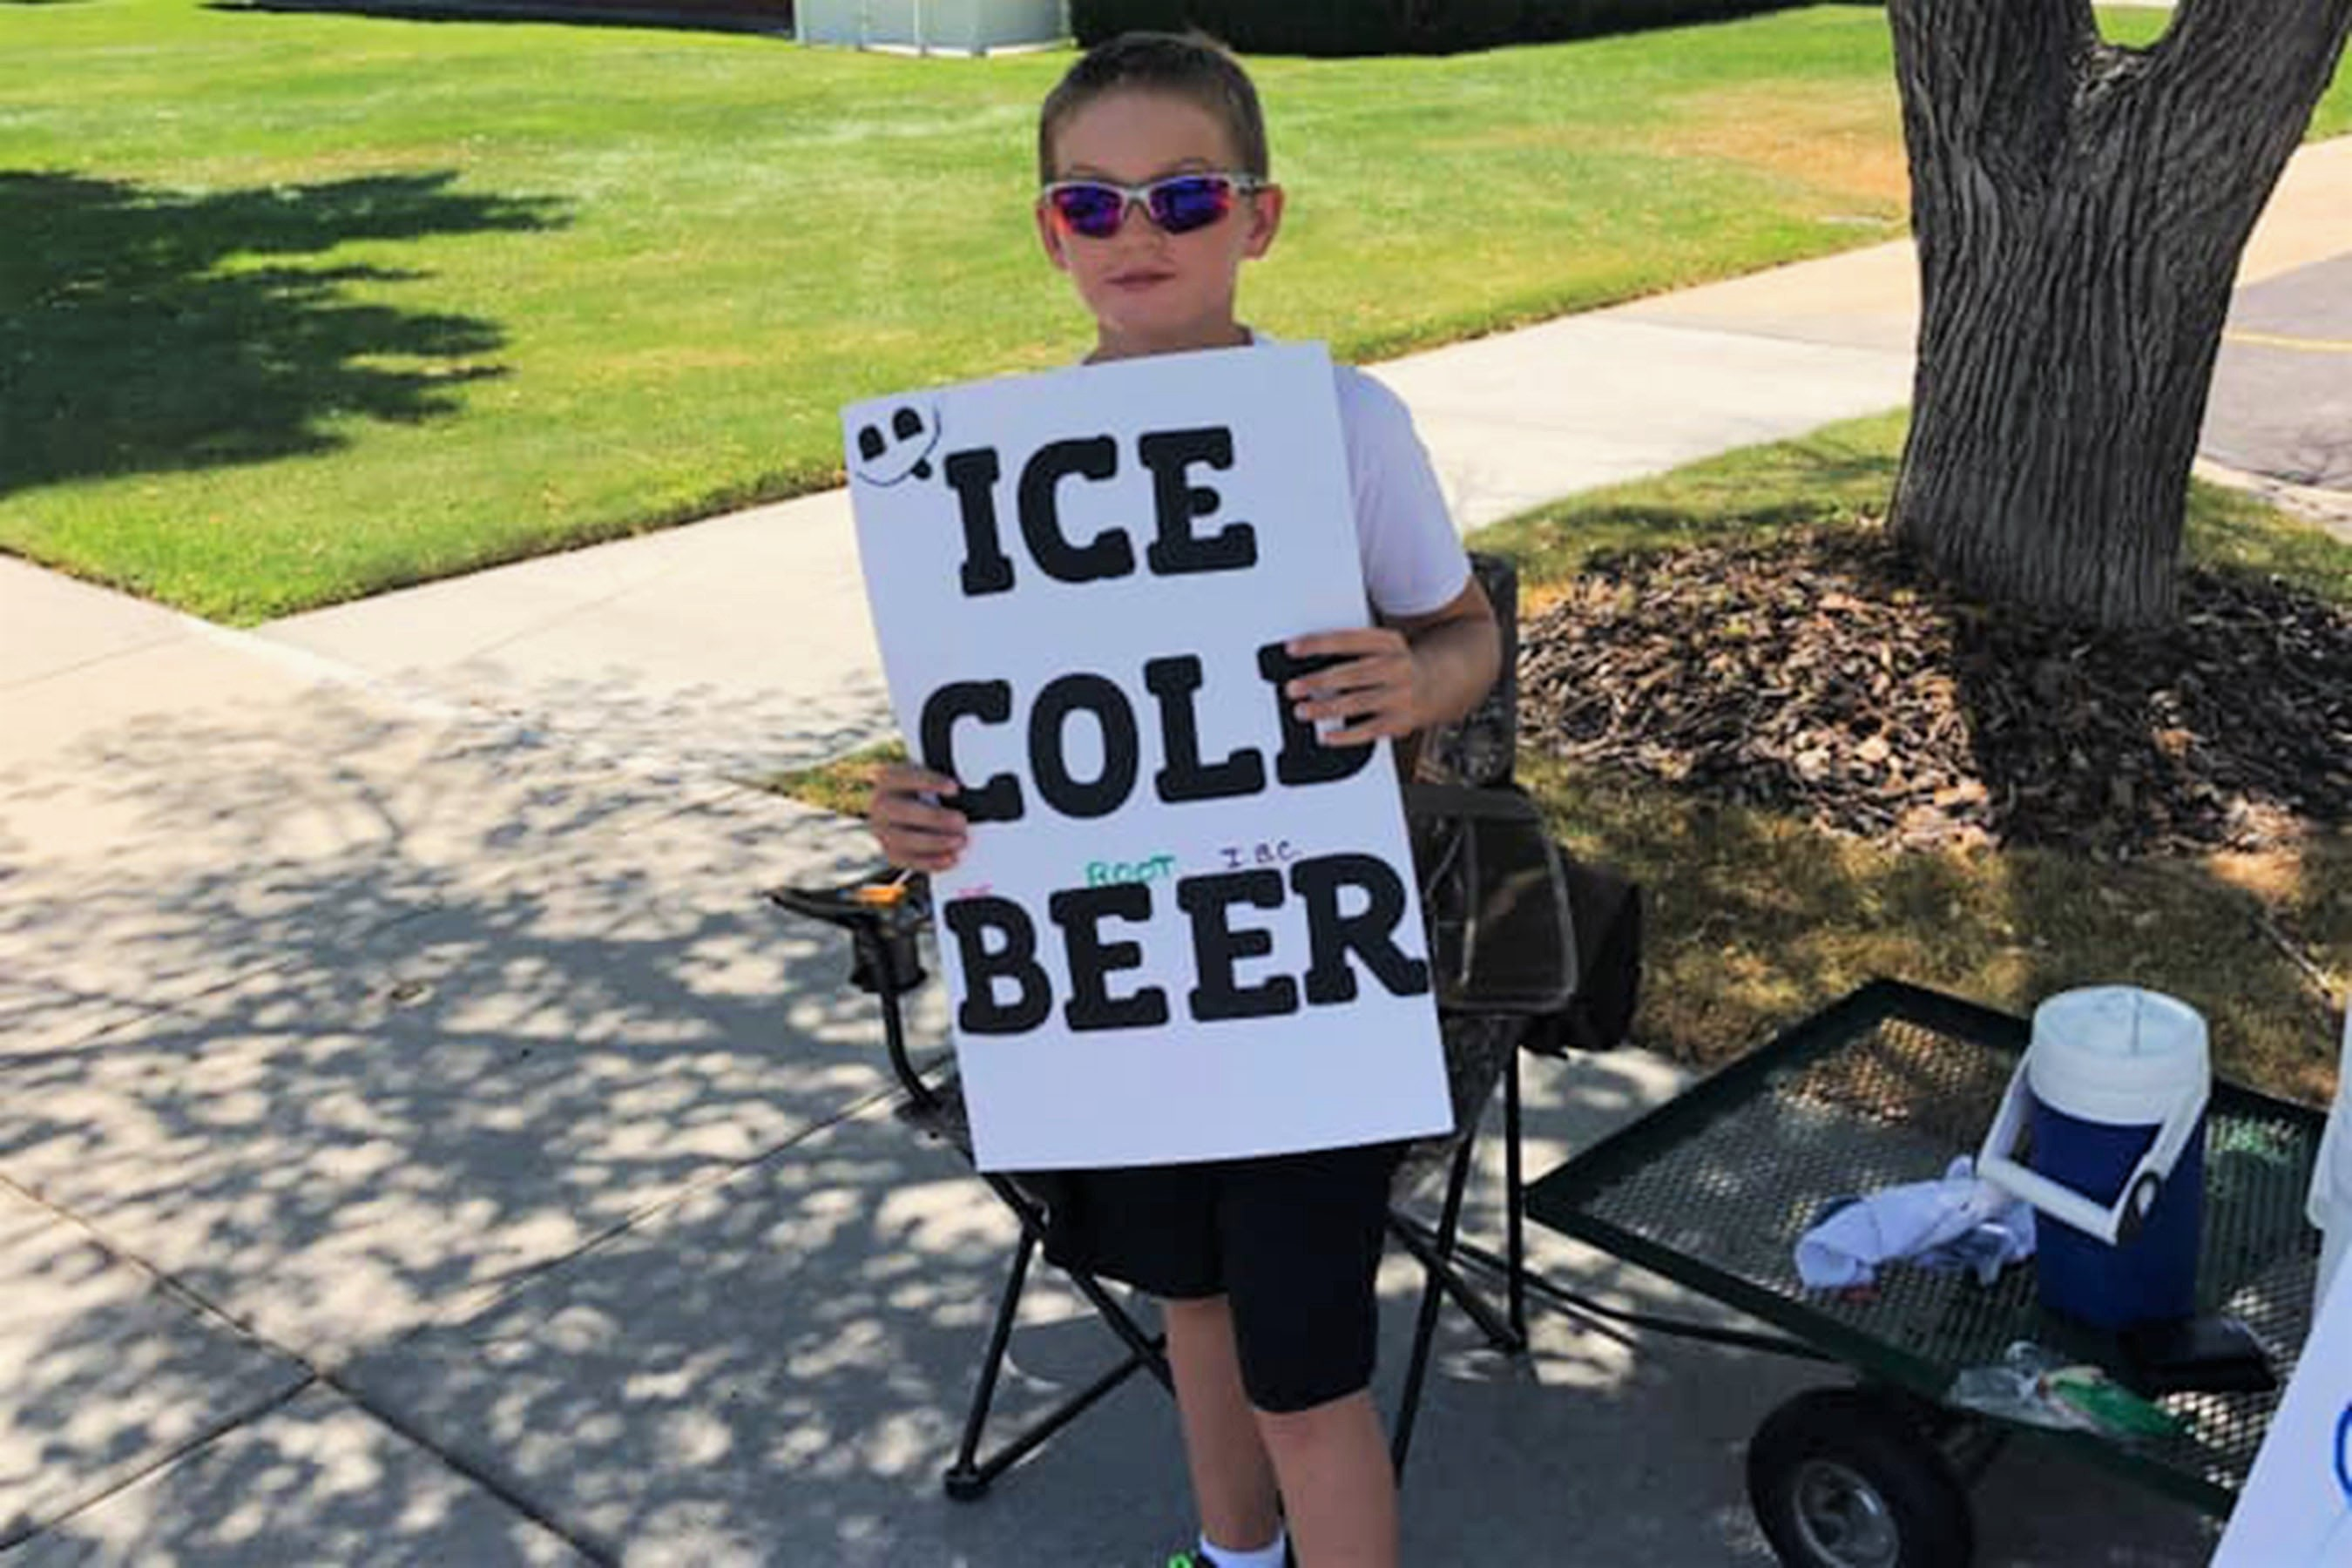 Utah boy selling root beer holding sign for ice cold beer